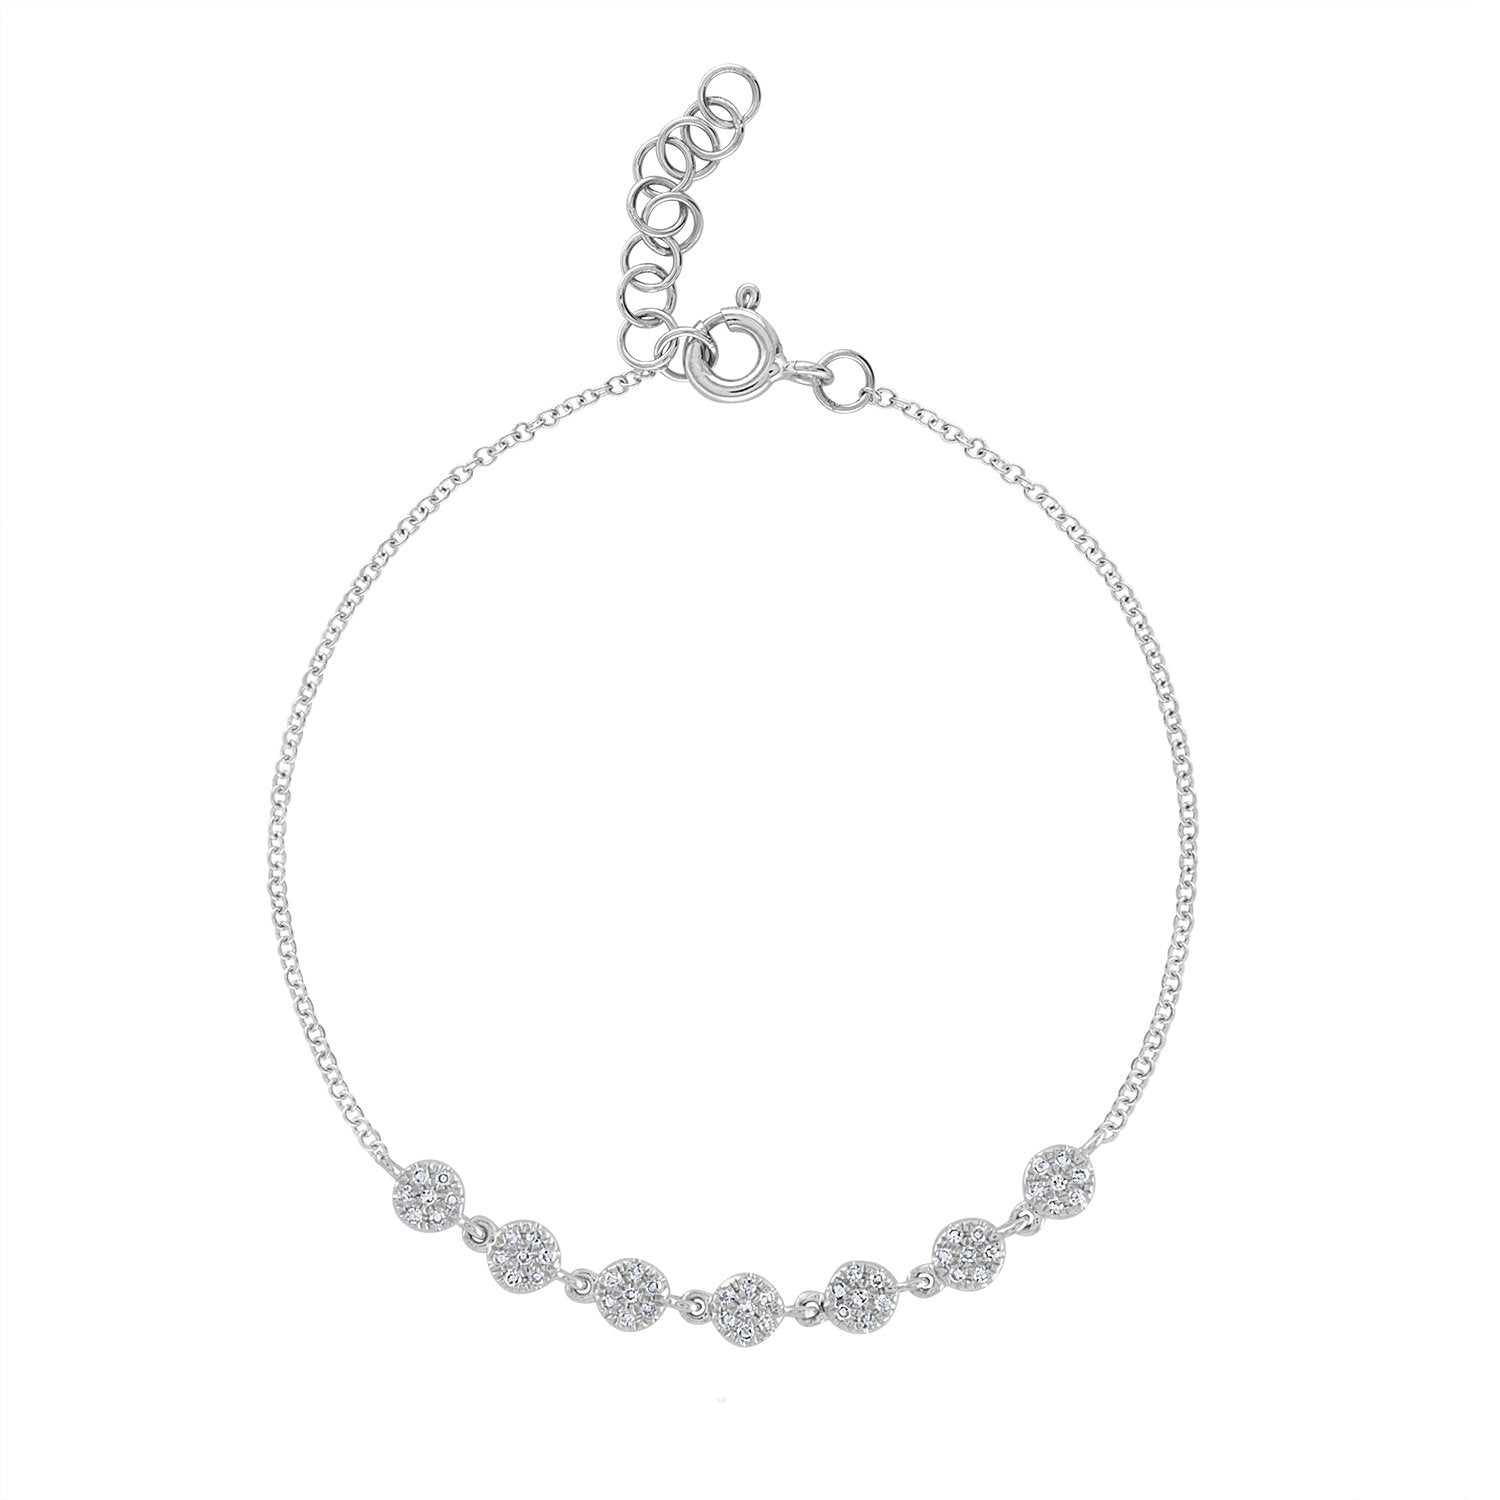 14K White Gold 7 connected pave mini circle bracelet